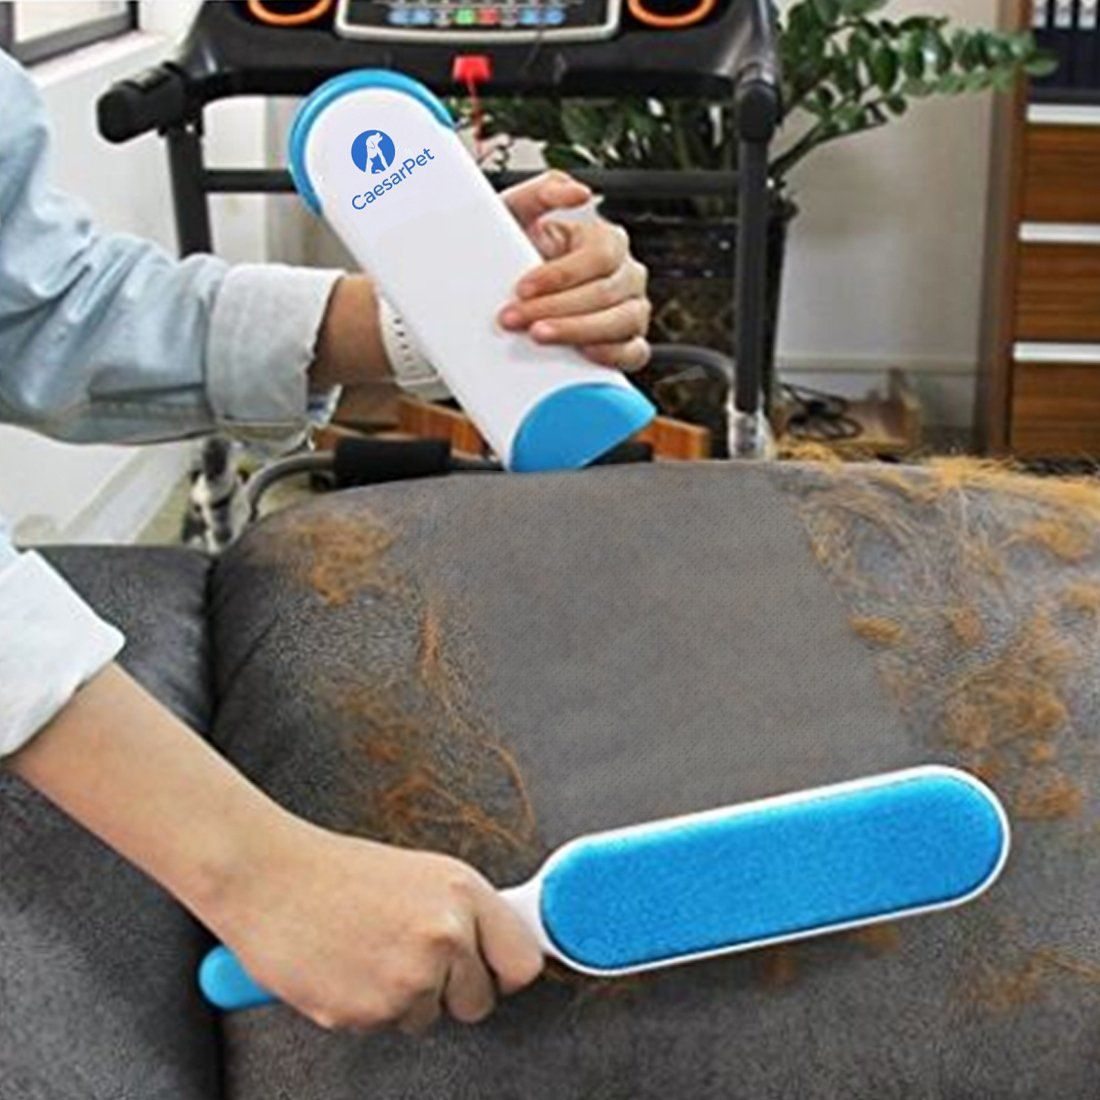 Pet Hair Remover Fur And Lint Removal Tool Dog And Cat Hair For Furniture Bed Car Seat Couch Carpet Clothes Uphol Dog Bed Furniture Pet Hair Removal Pet Hair